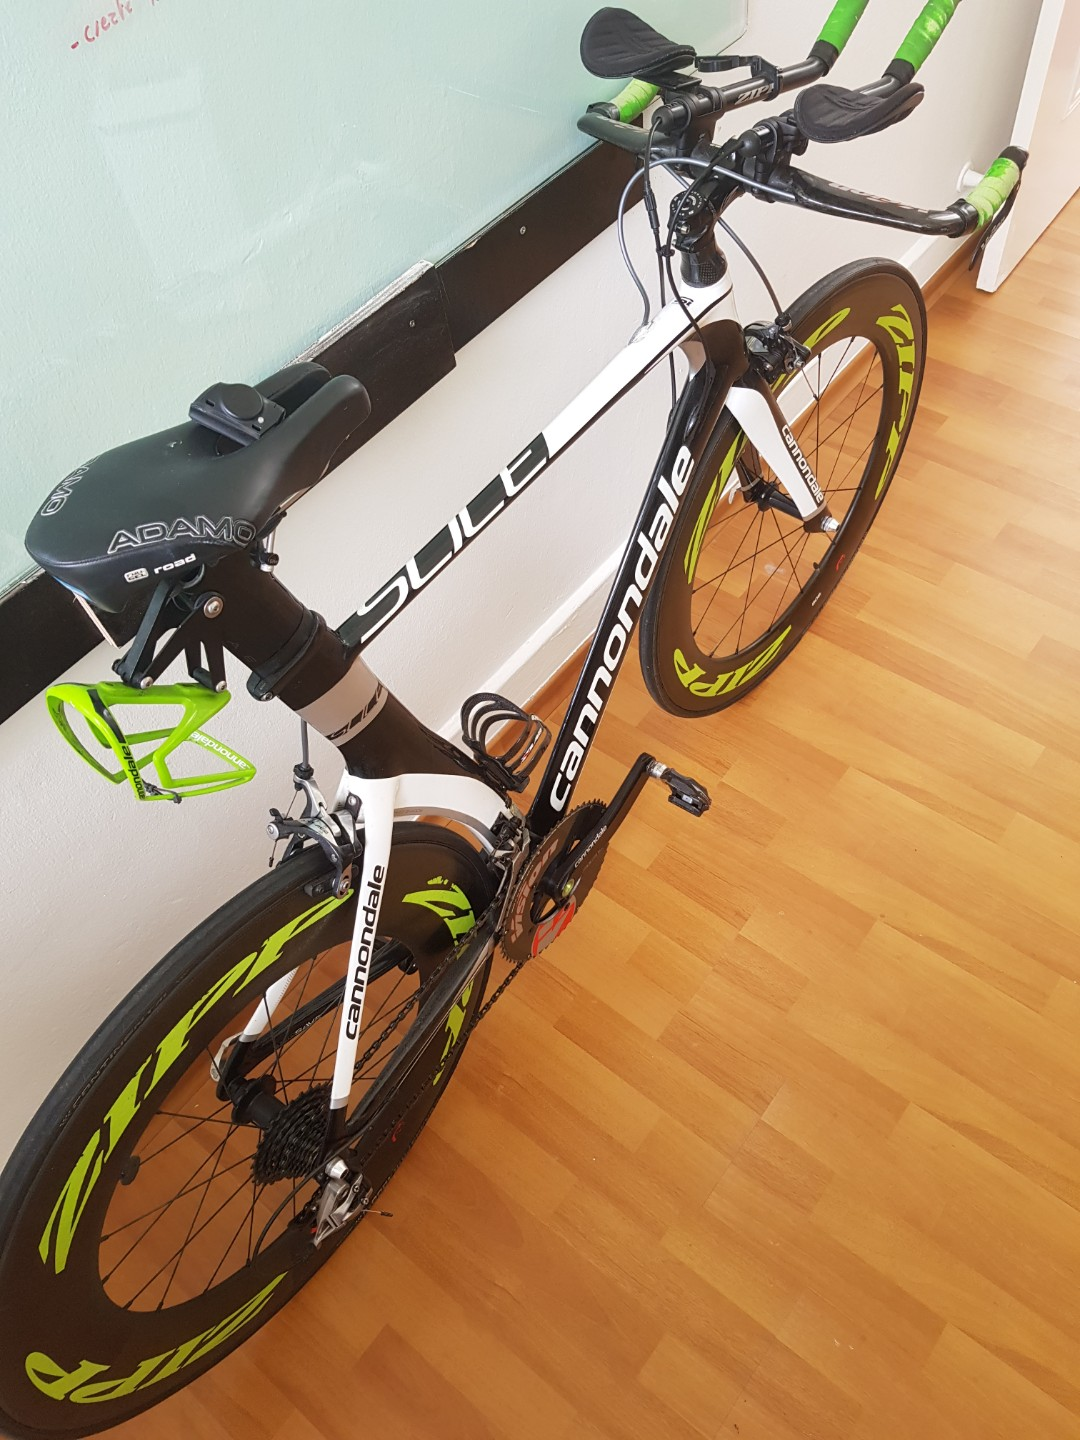 69592ae4a7b TT 58cm cannondale slice fully mod shram, Bicycles & PMDs, Bicycles ...